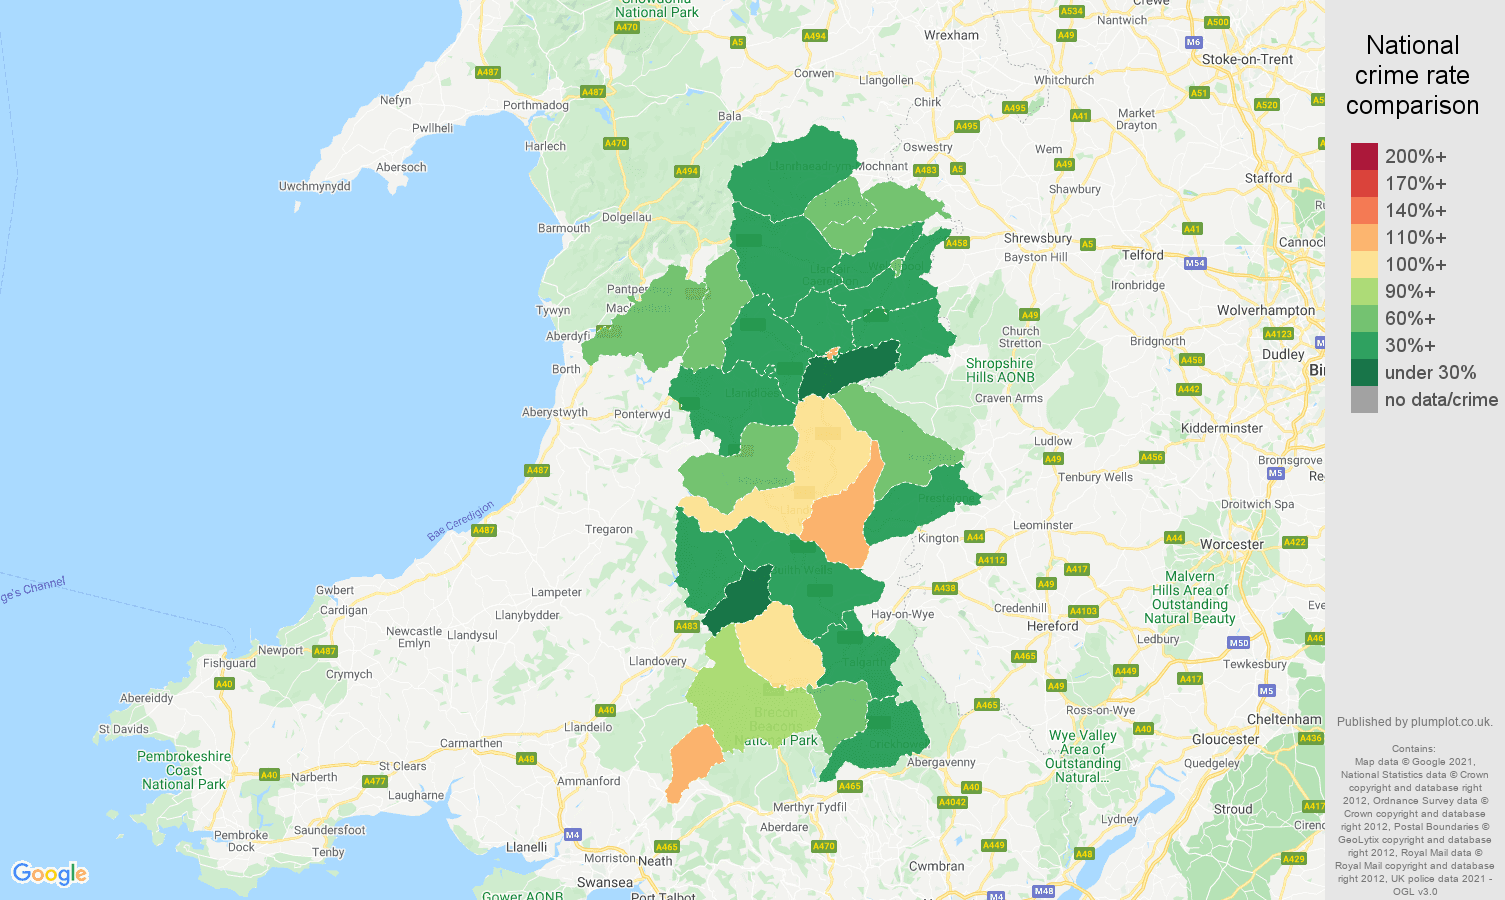 Powys violent crime rate comparison map